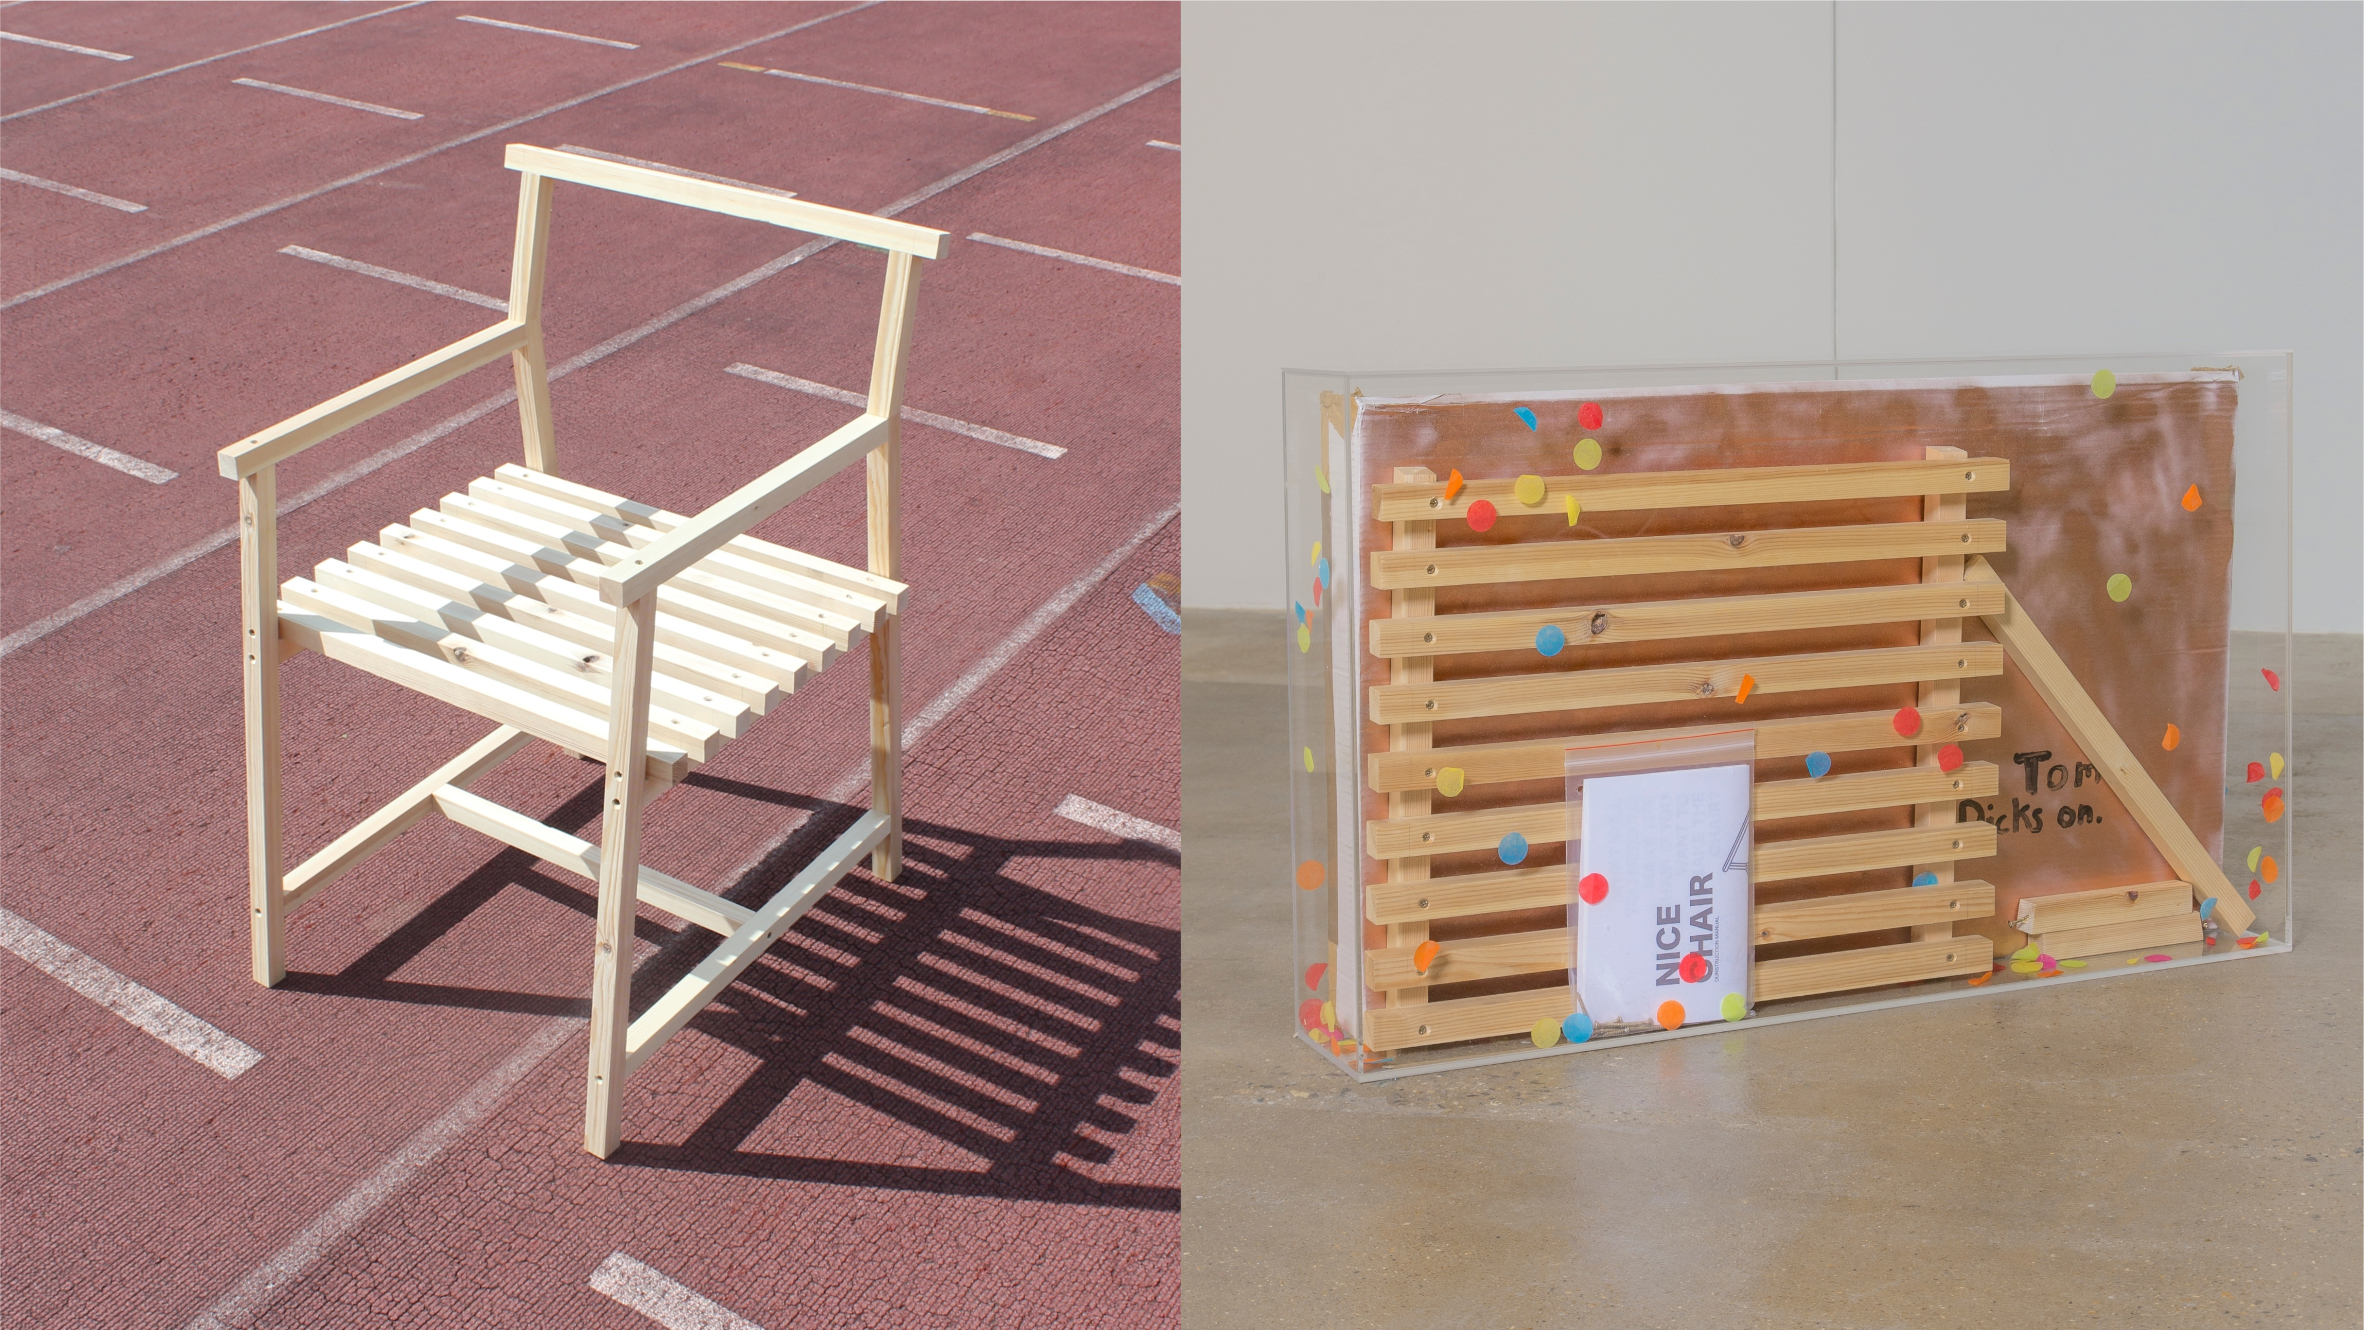 Chair Dunistrishuns by Joe Lycett from 19 Chairs project